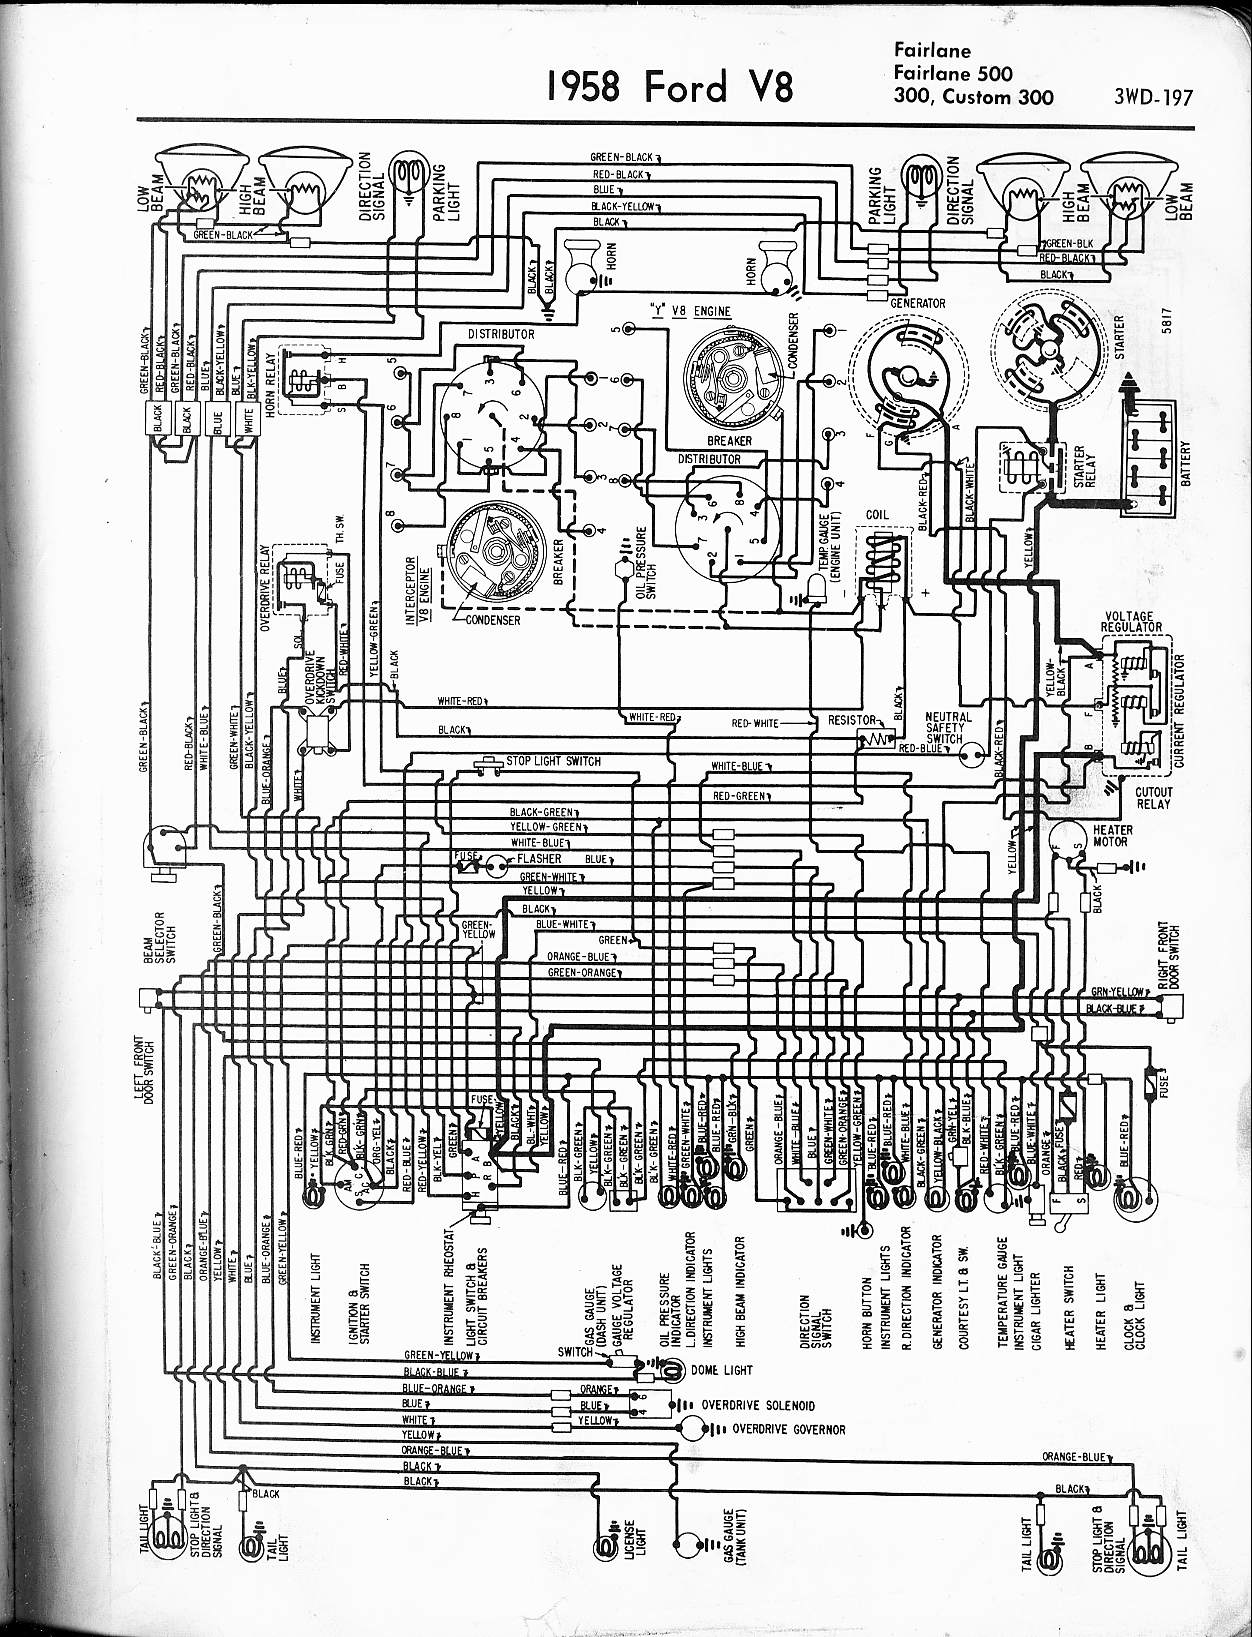 57 65 Ford Wiring Diagrams Simple Ev Schematics 1958 V8 Fairlane 500 300 Custom